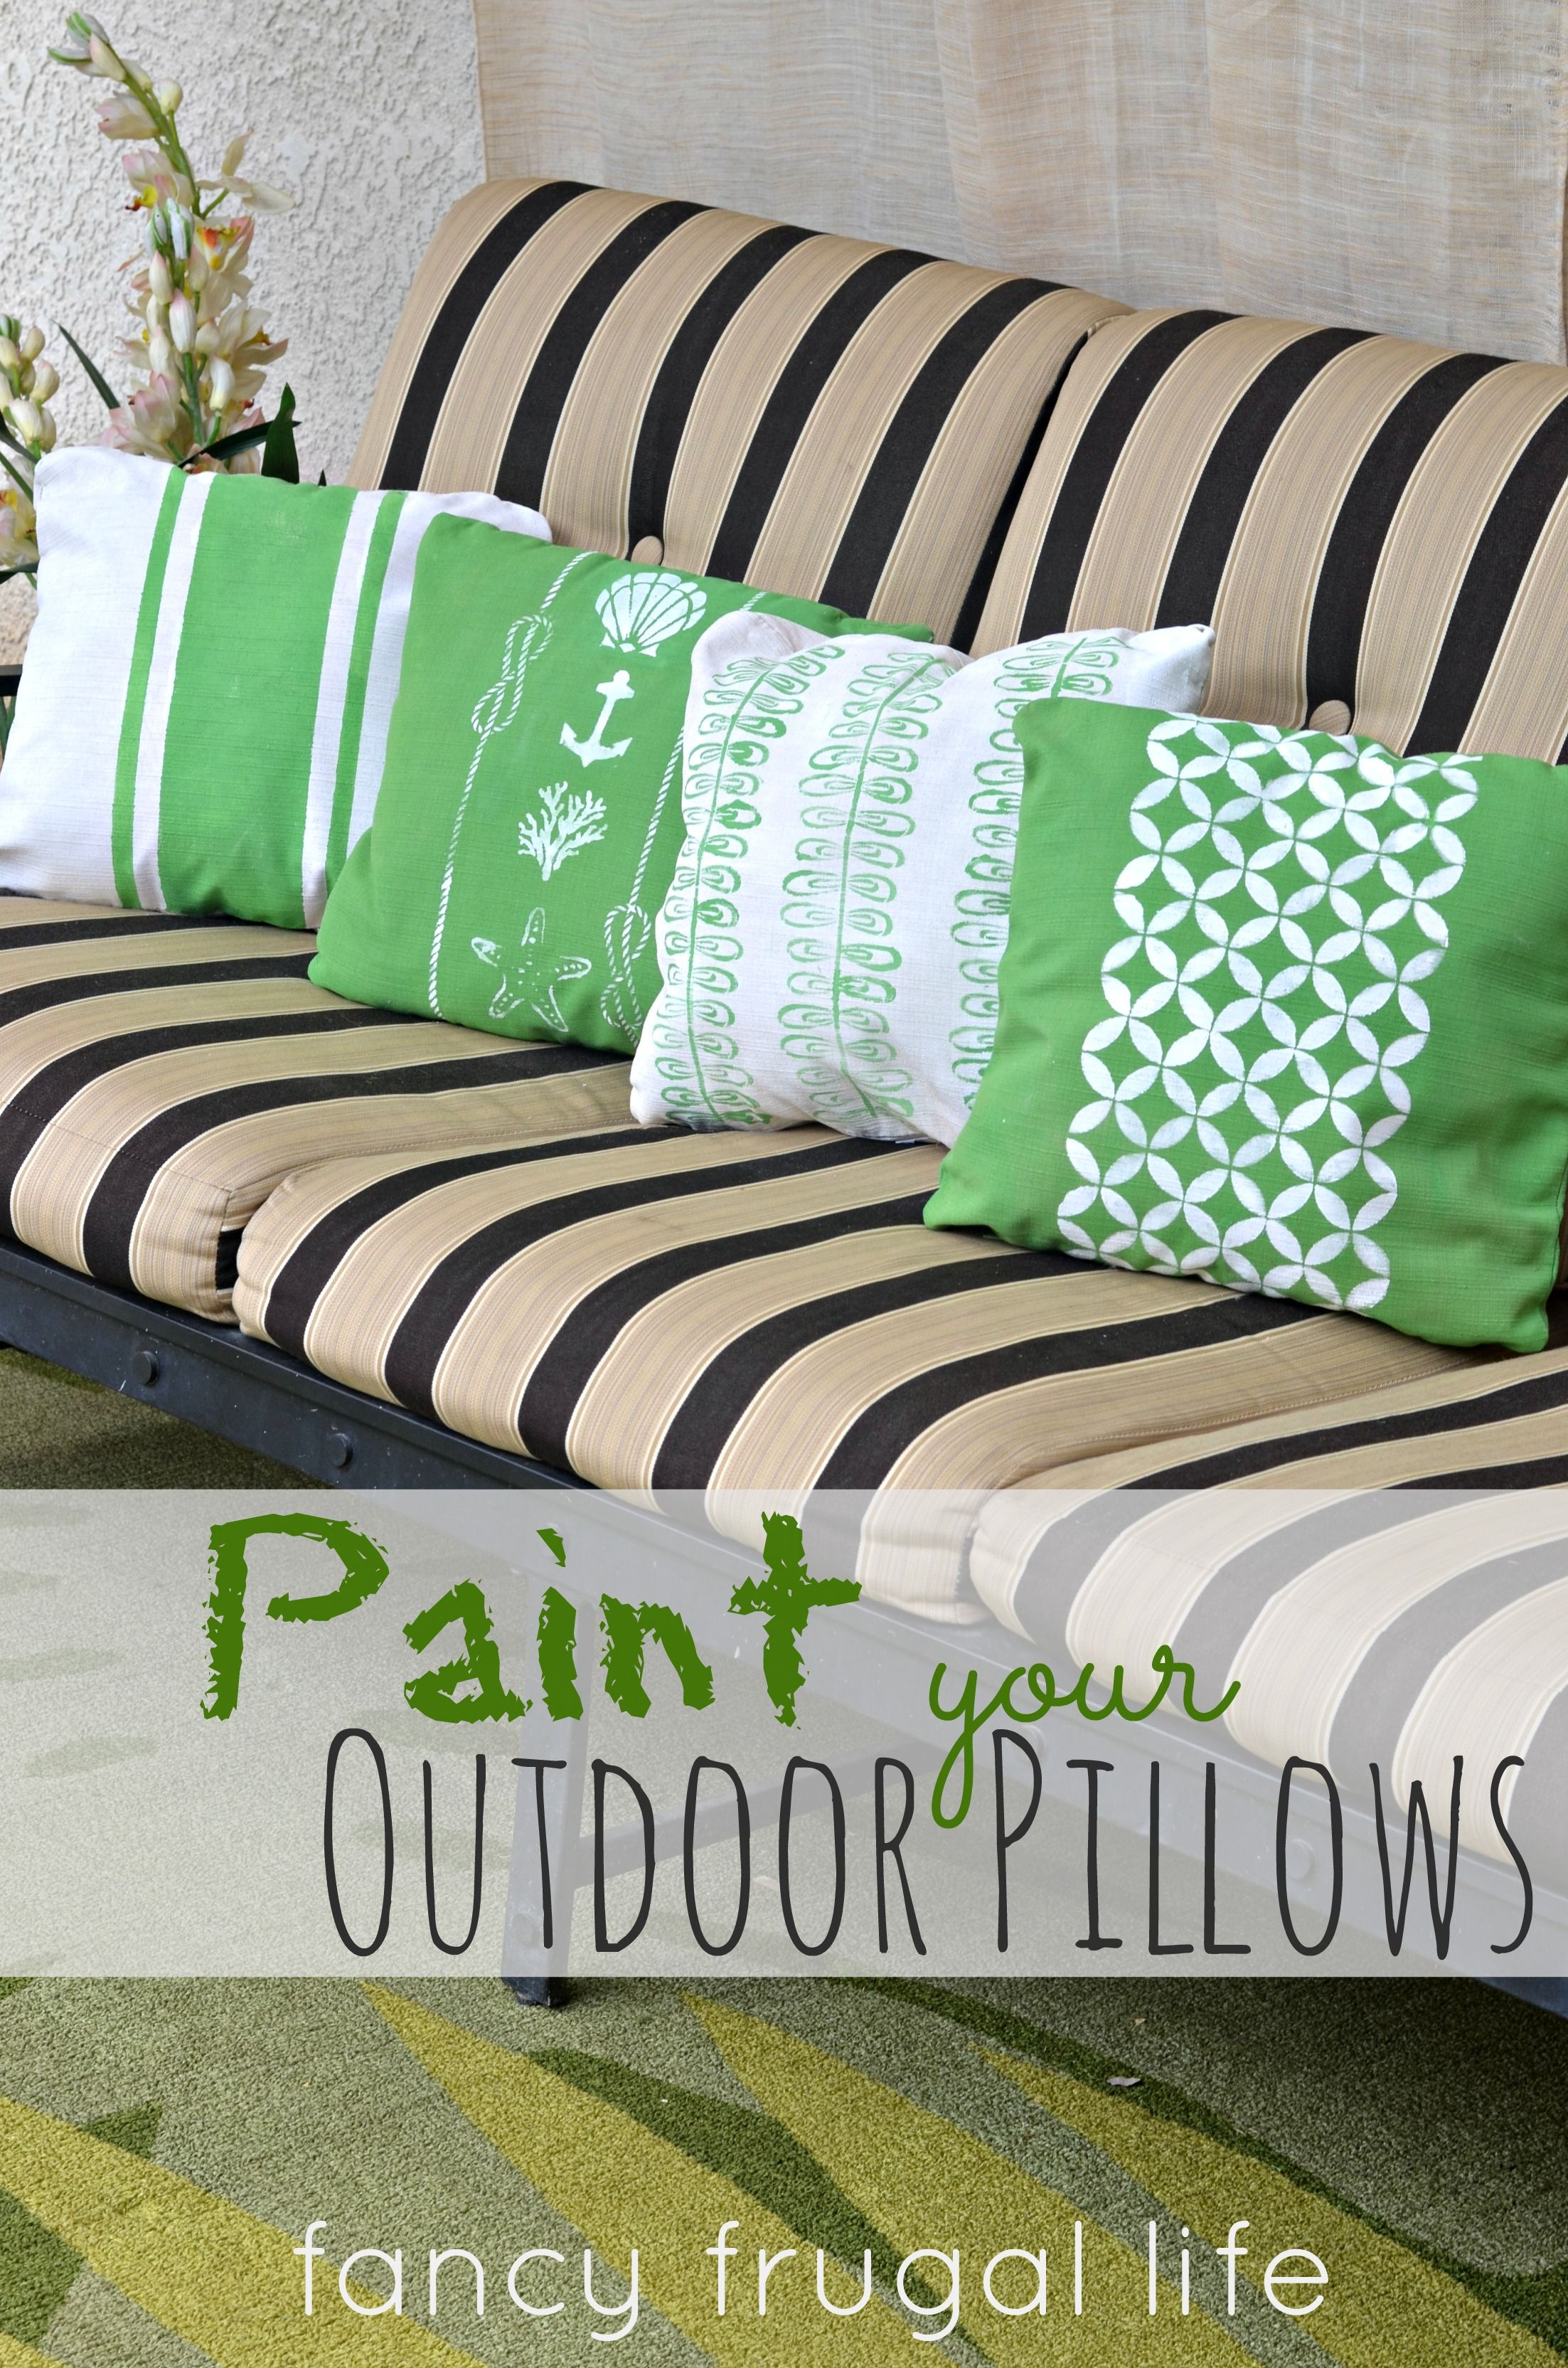 Painting Outdoor Pillows You Can Do That Who Knew With